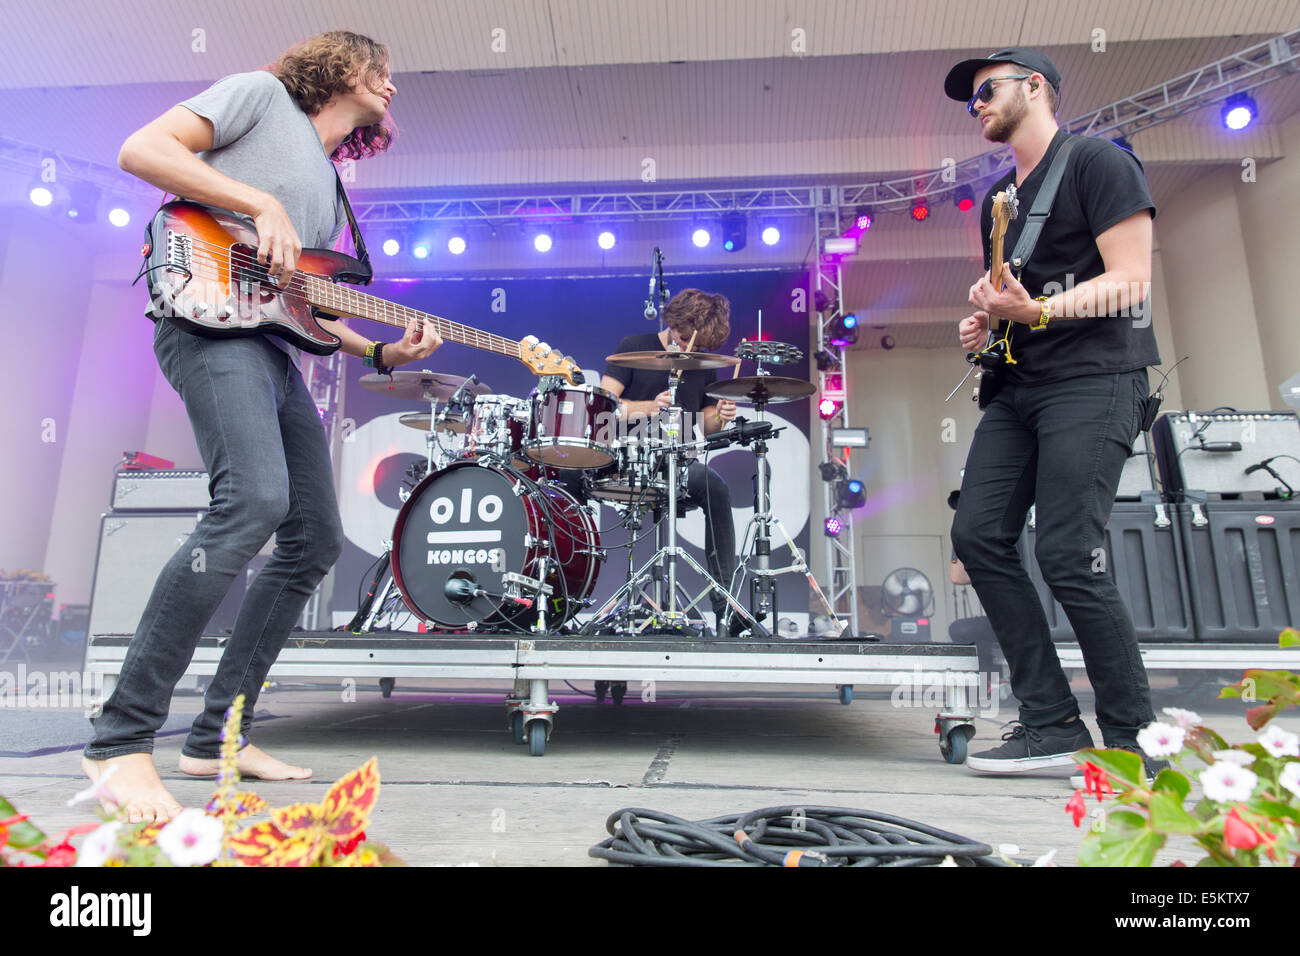 Chicago, Illinois, USA. 3rd Aug, 2014. Kongos perform live at the 2014 Lollapalooza Music Festival in Chicago, Illinois - Stock Image